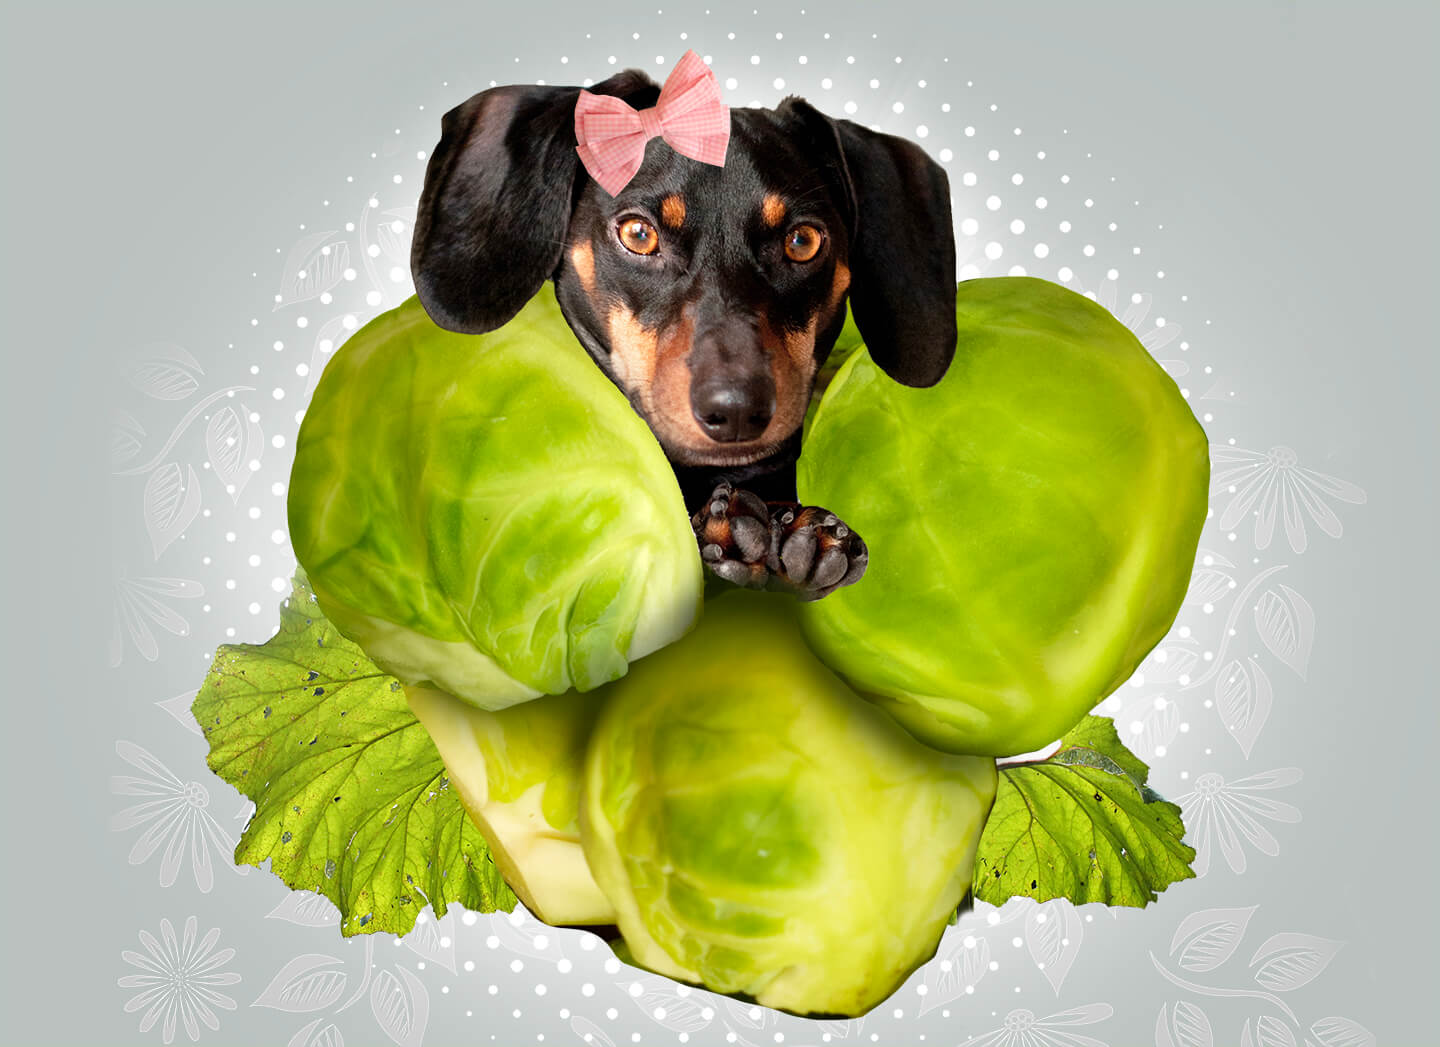 healthy snacks for dogs, veggies like brussel sprouts